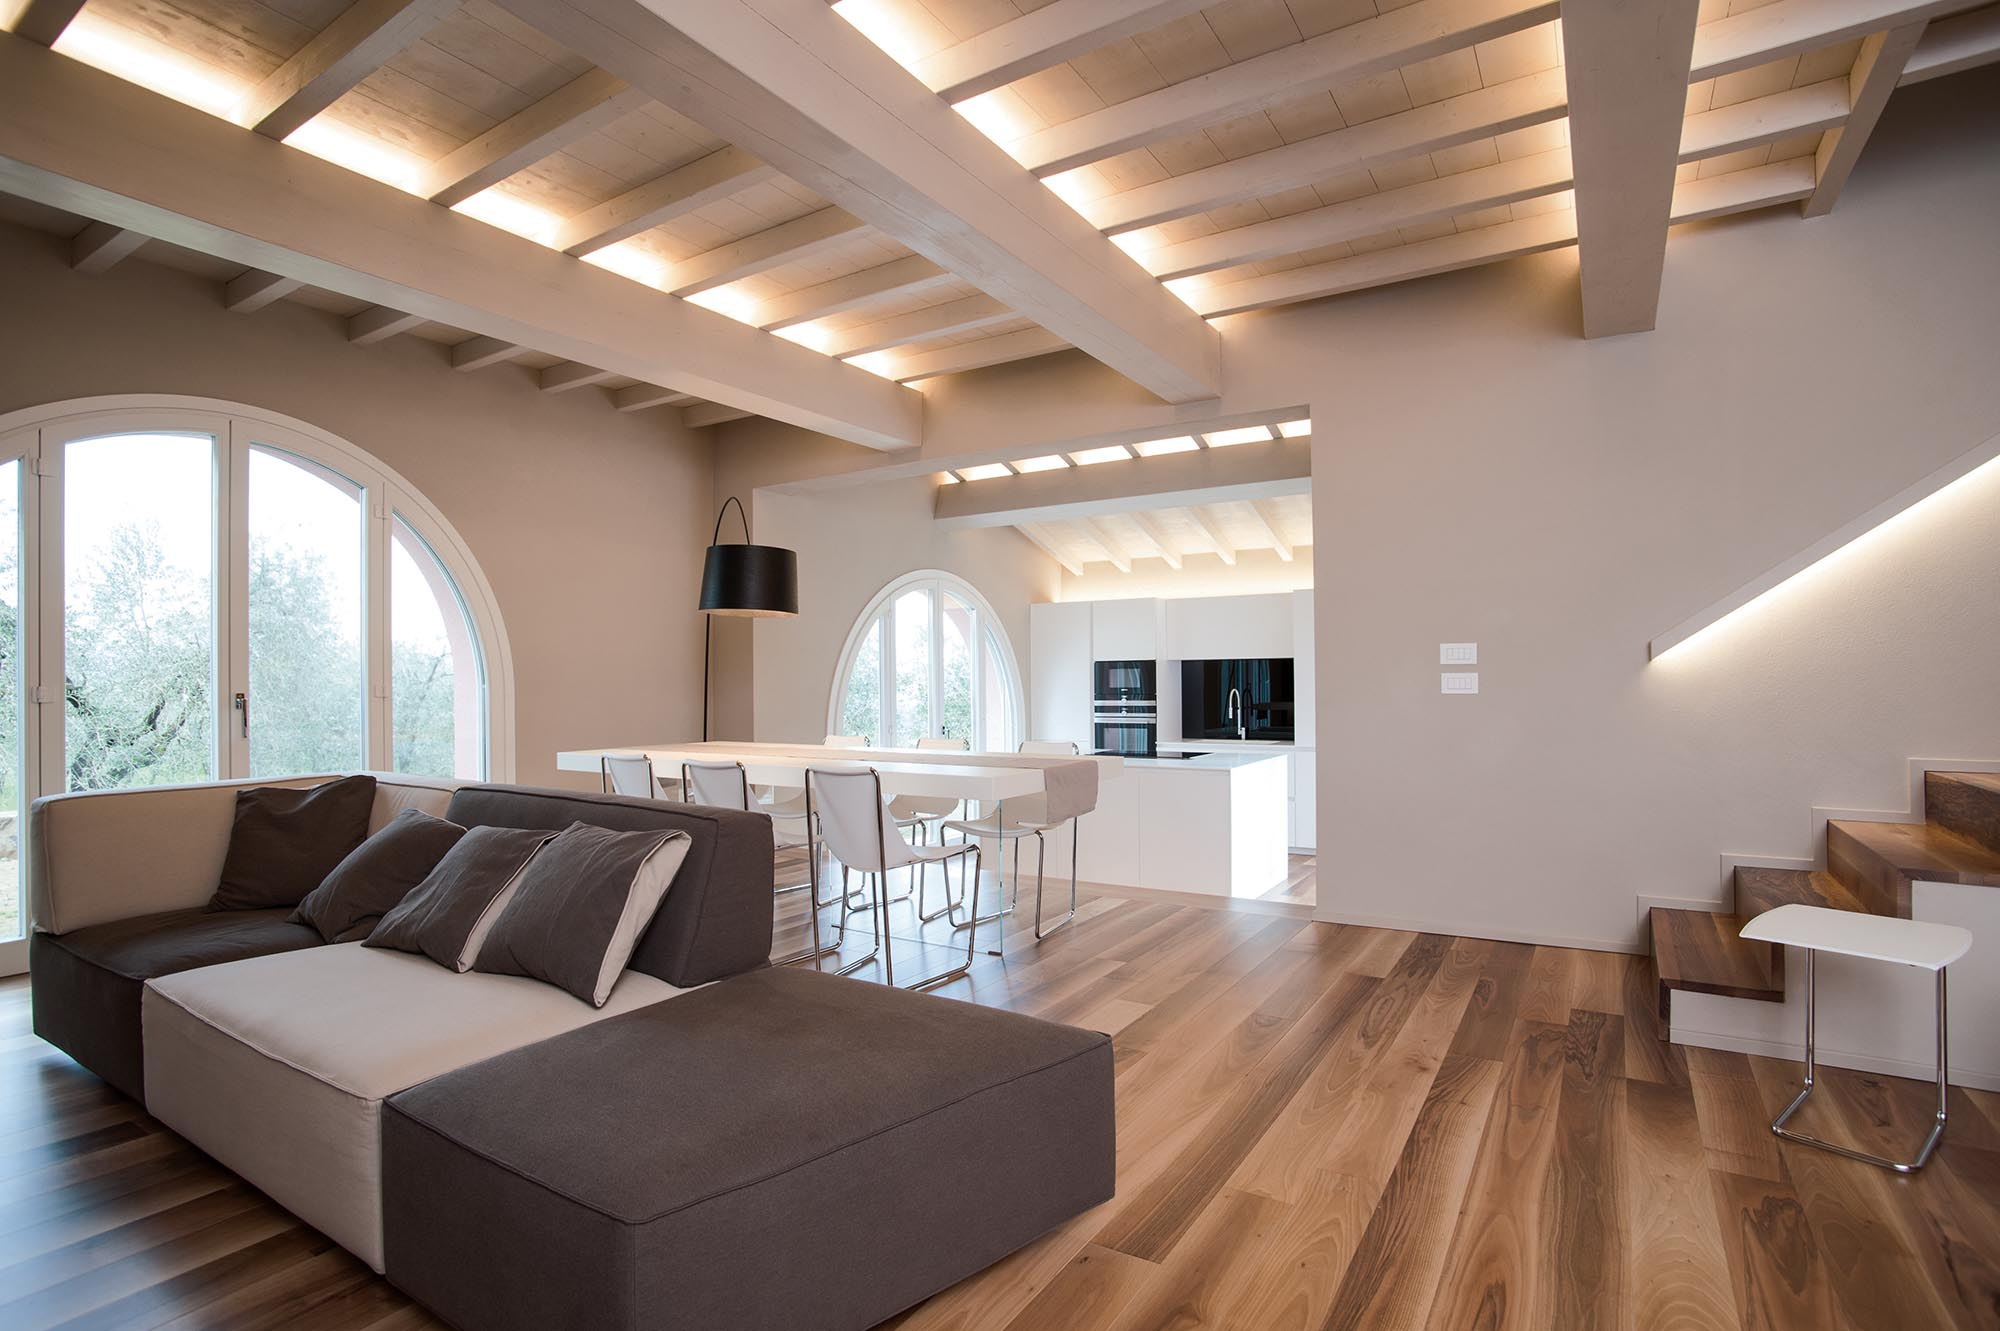 Minimal interior of villa rachele biancalani for Appartamenti di design